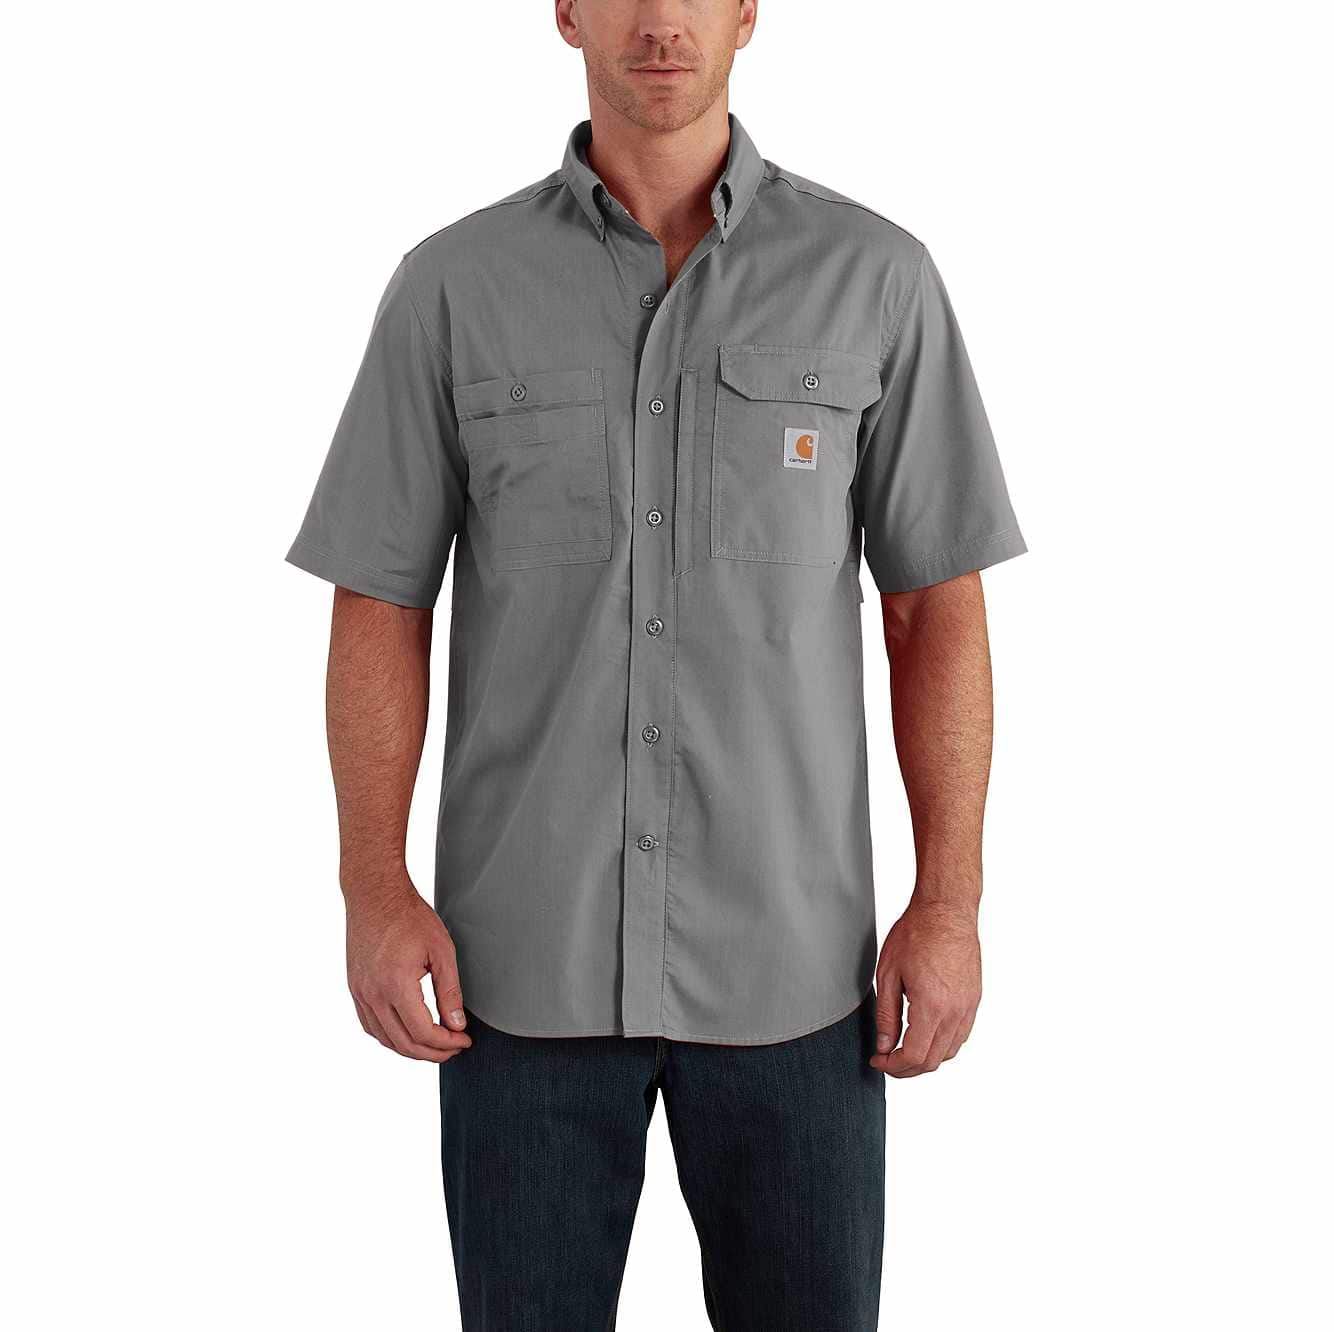 Picture of Carhartt Force® Ridgefield Solid Short Sleeve Shirt in Asphalt